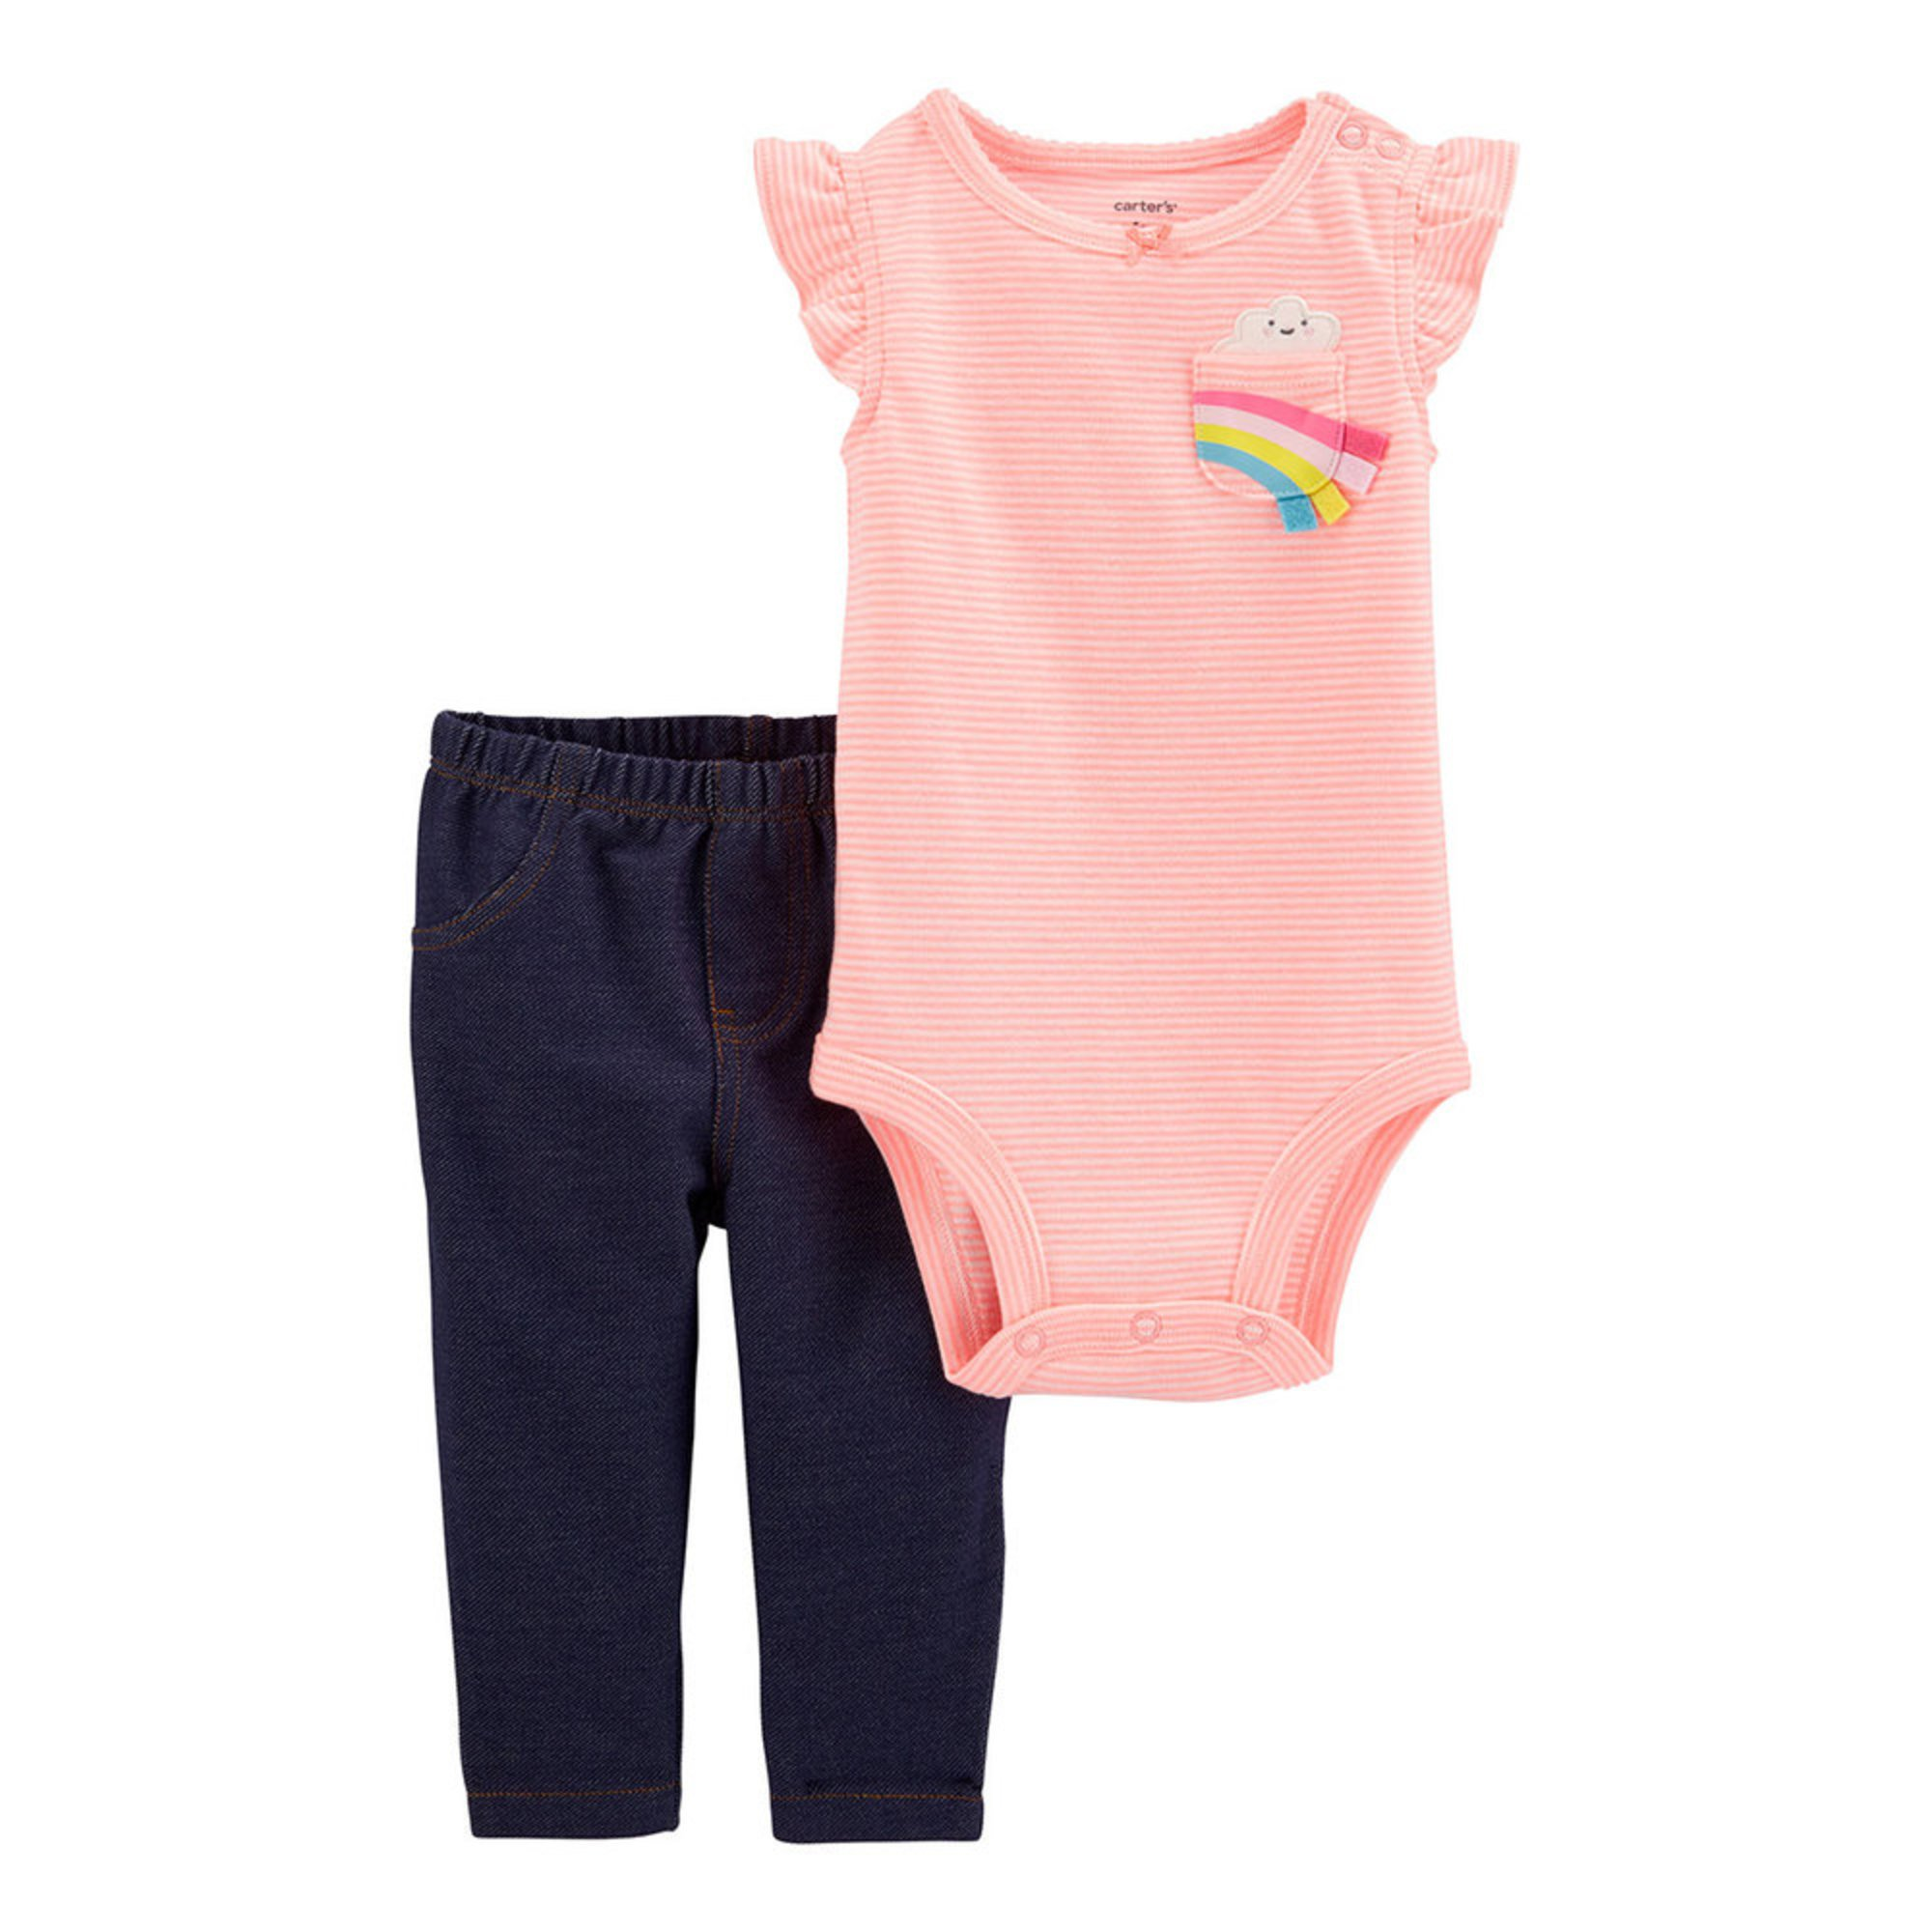 Carters Baby Girls' Rainbow Bodysuit And Pant Set | Baby Girls' Sets |  Baby, Kids & Toys - Shop Your Navy Exchange - Official Site